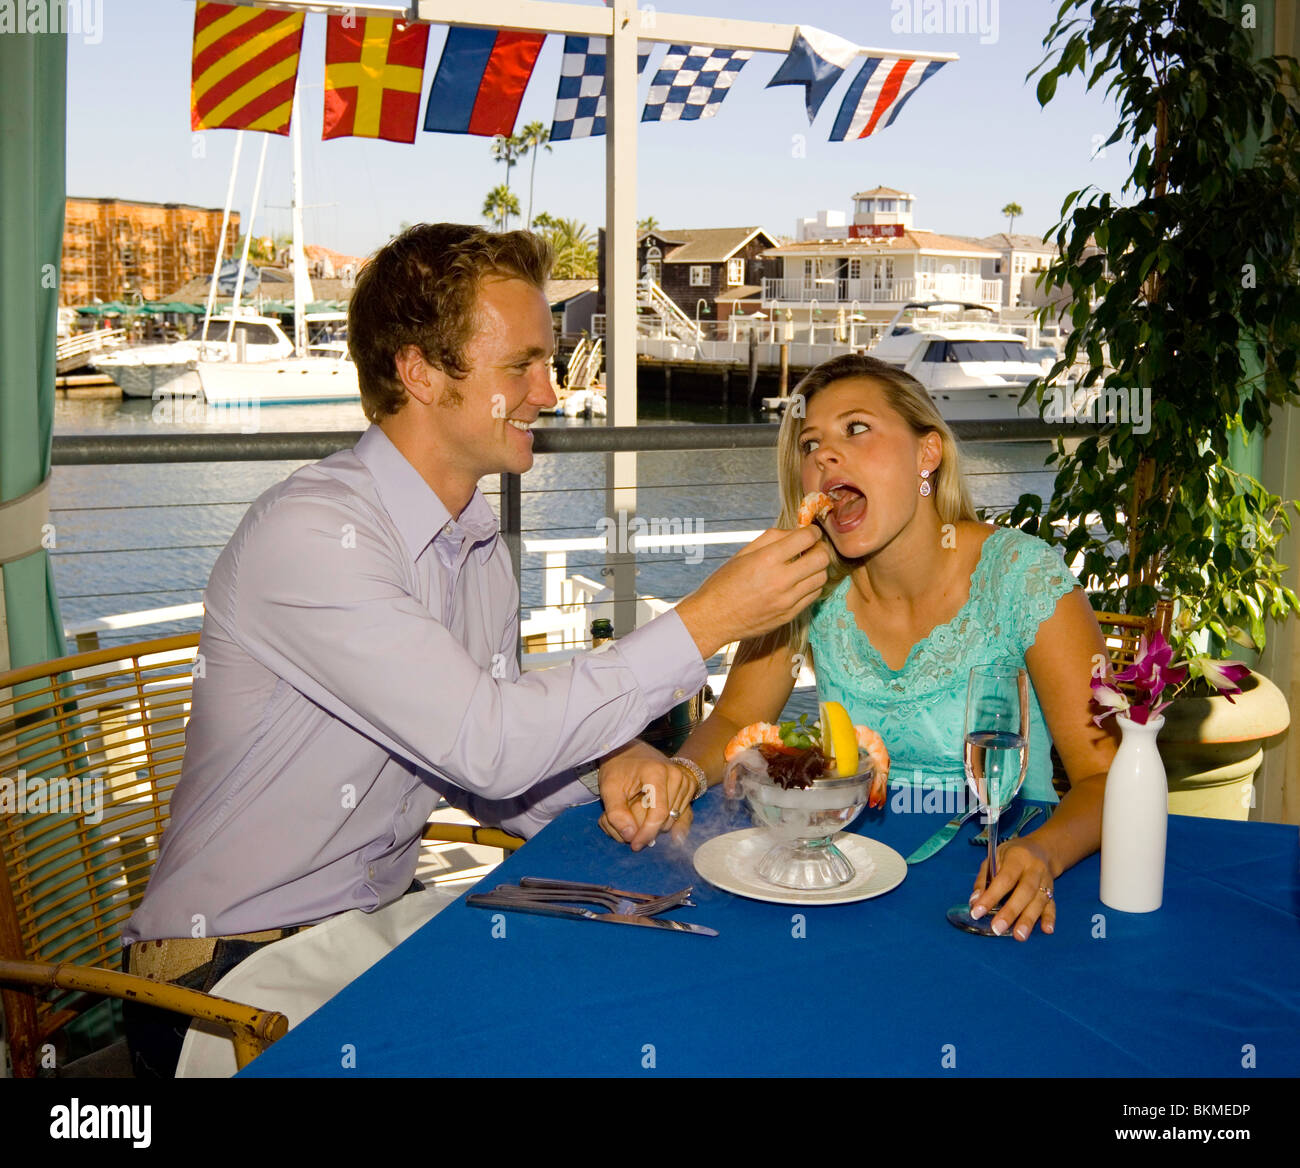 The Cannery Is A Favorite Seafood Restaurant Of Romantic